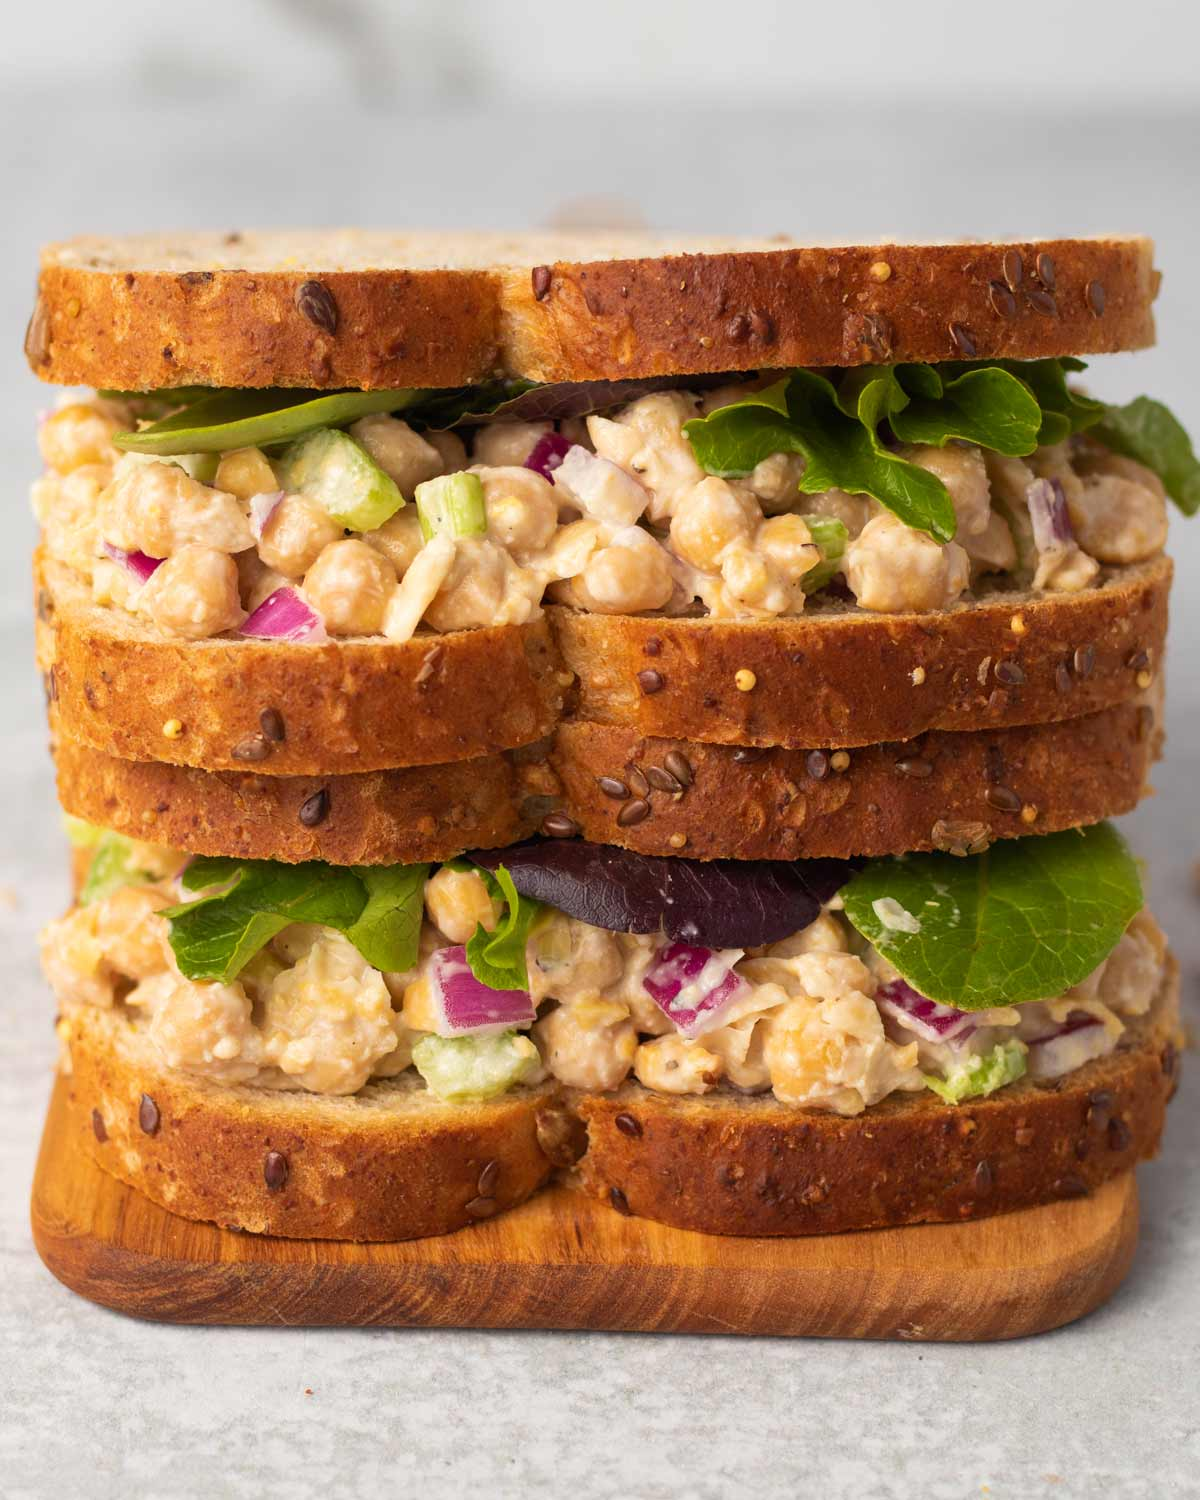 A stack of two simple chickpea salad sandwiches topped with lettuce on a wooden board.